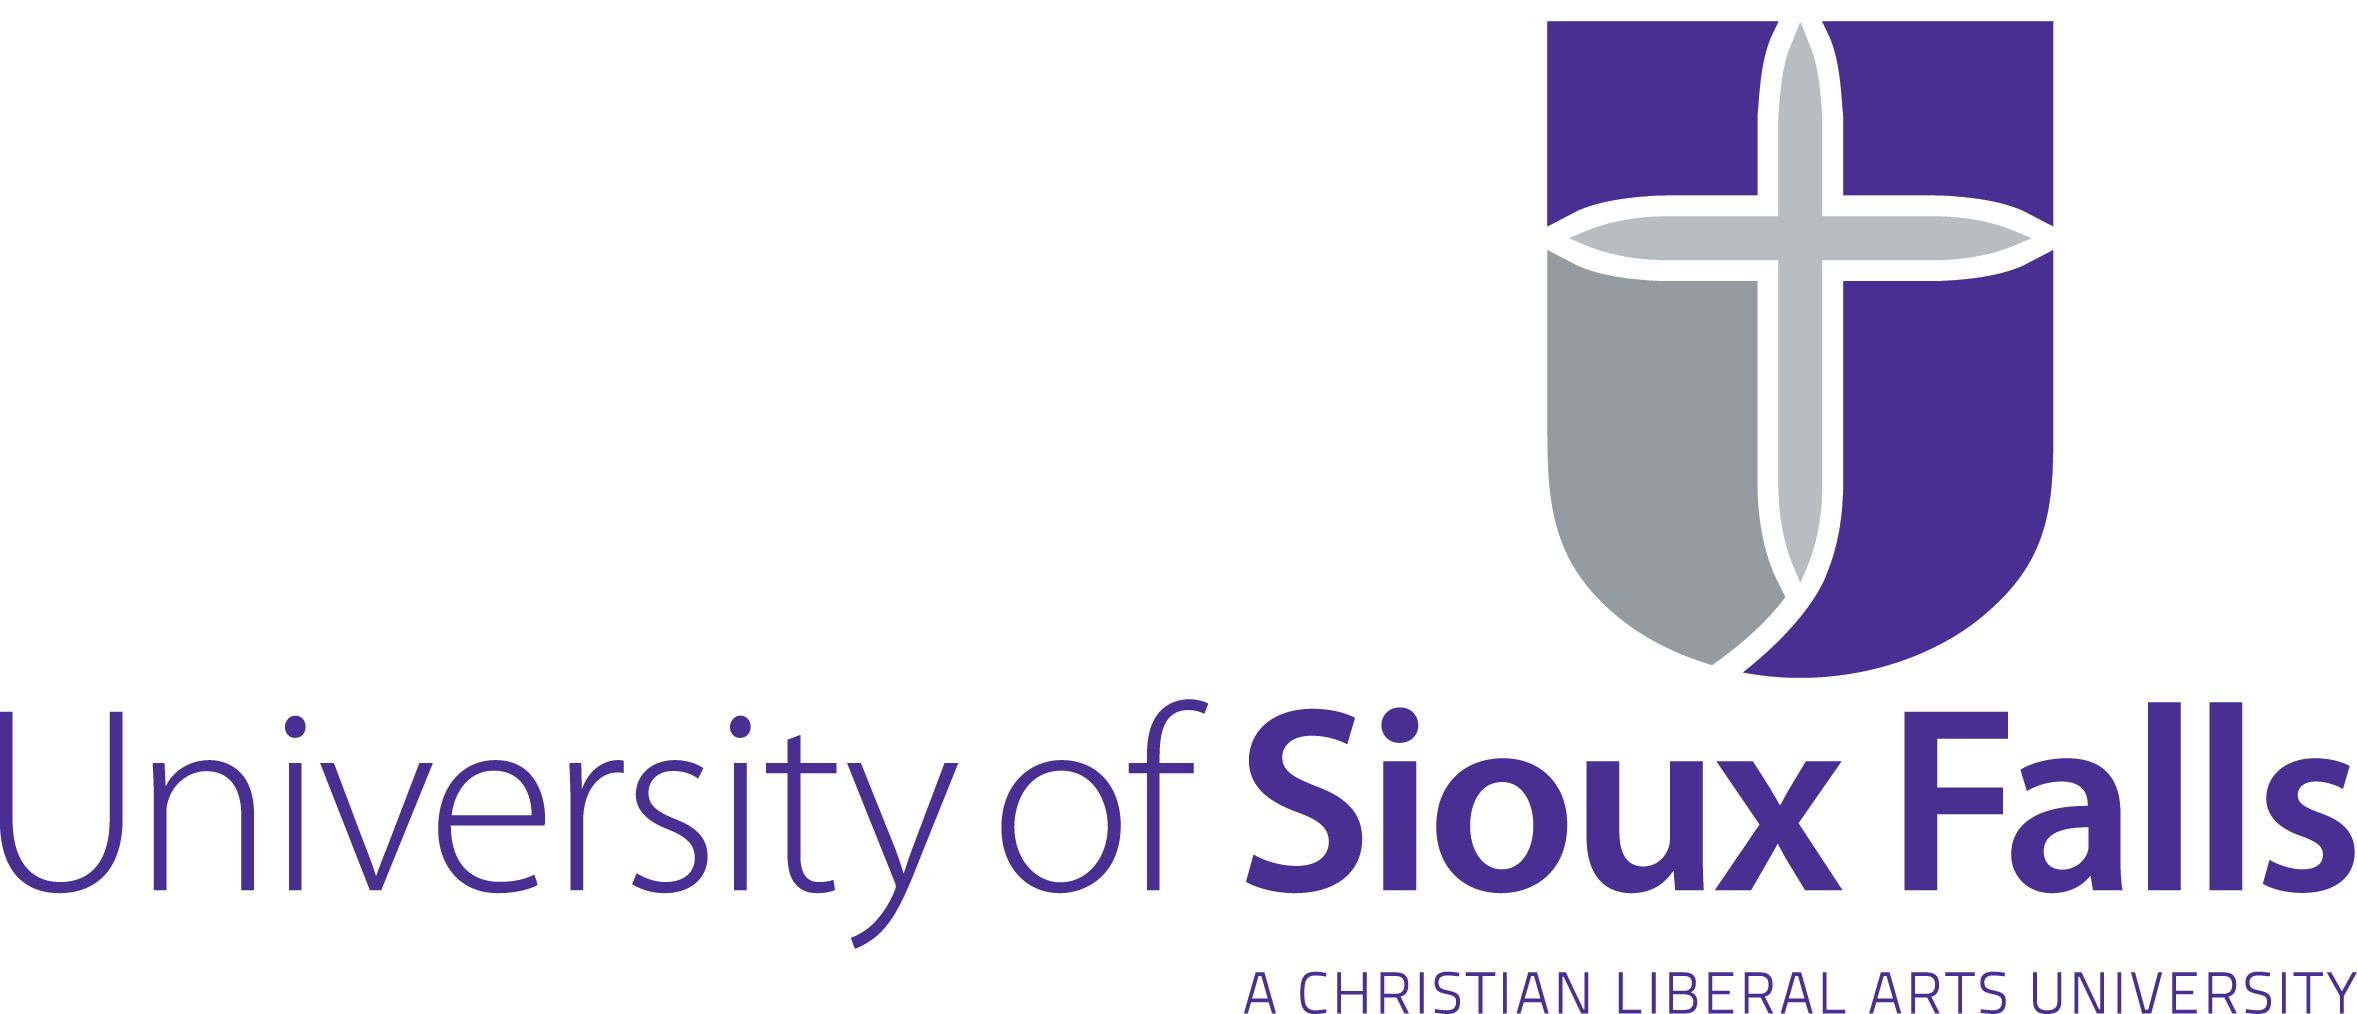 University of Sioux Falls Logo